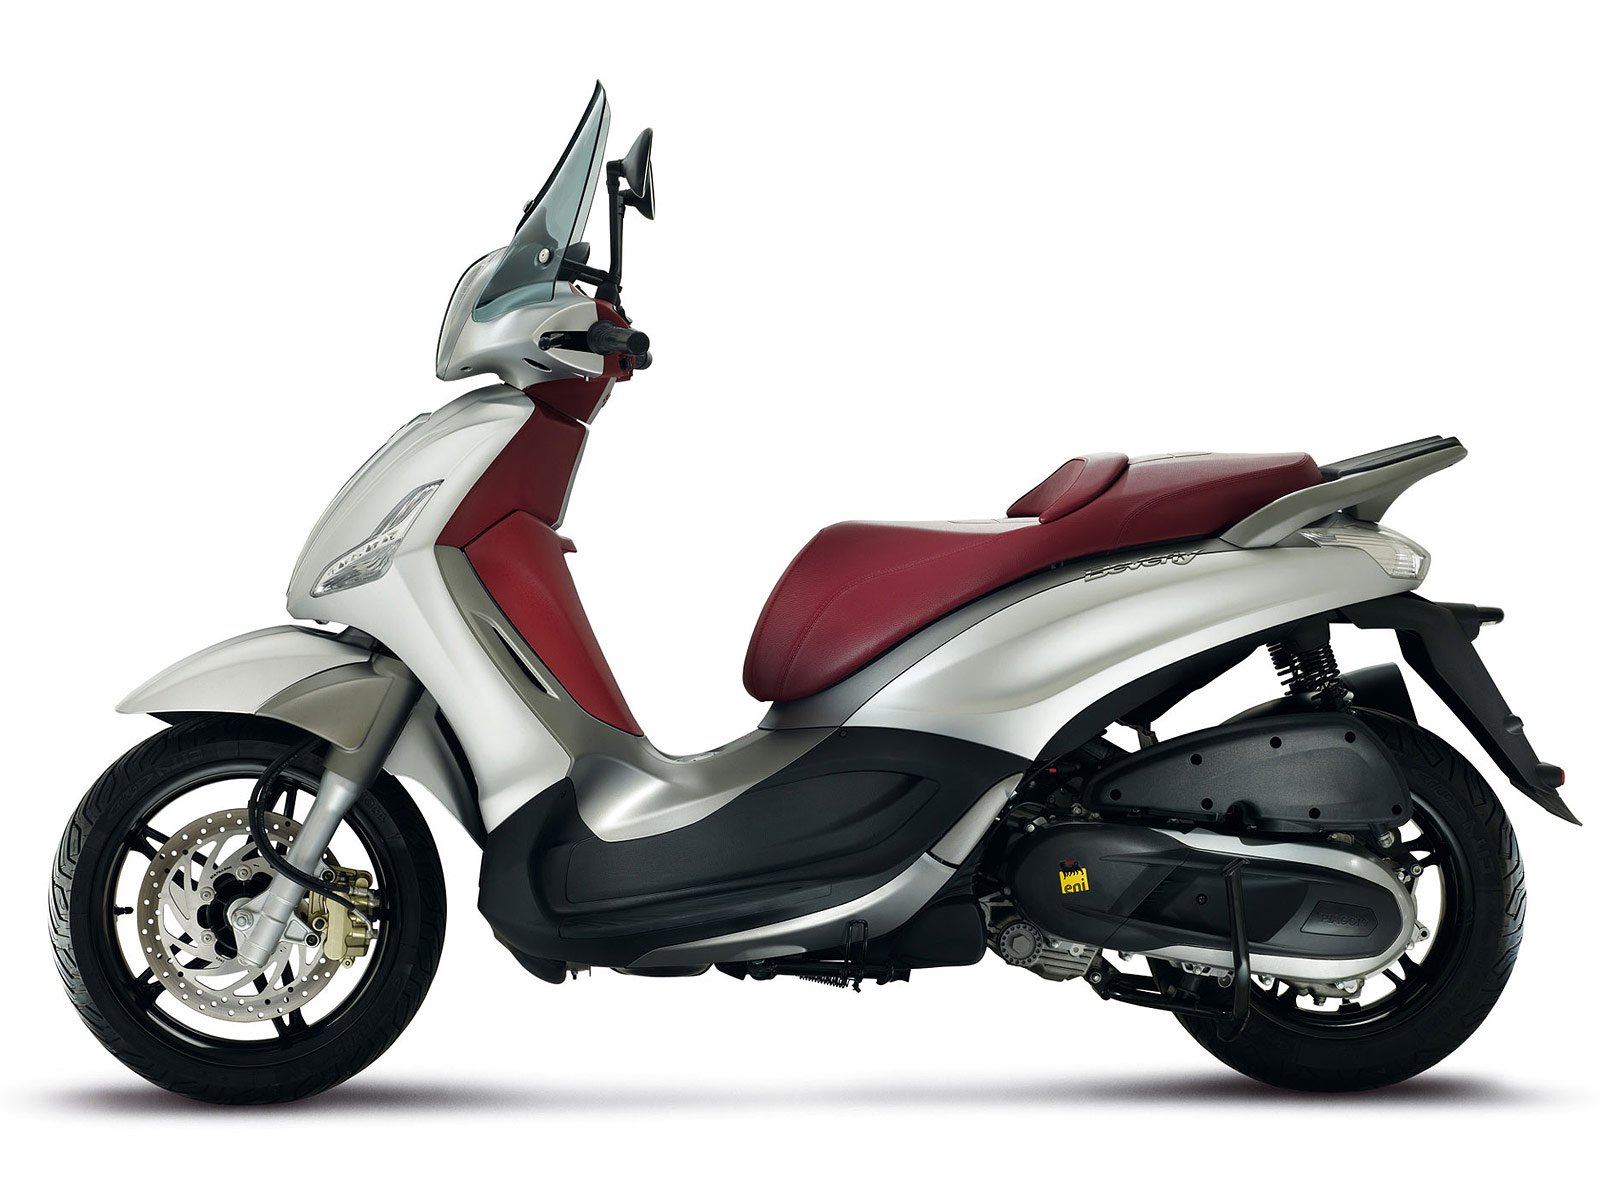 2012 piaggio beverly sport touring 350 insurance information. Black Bedroom Furniture Sets. Home Design Ideas